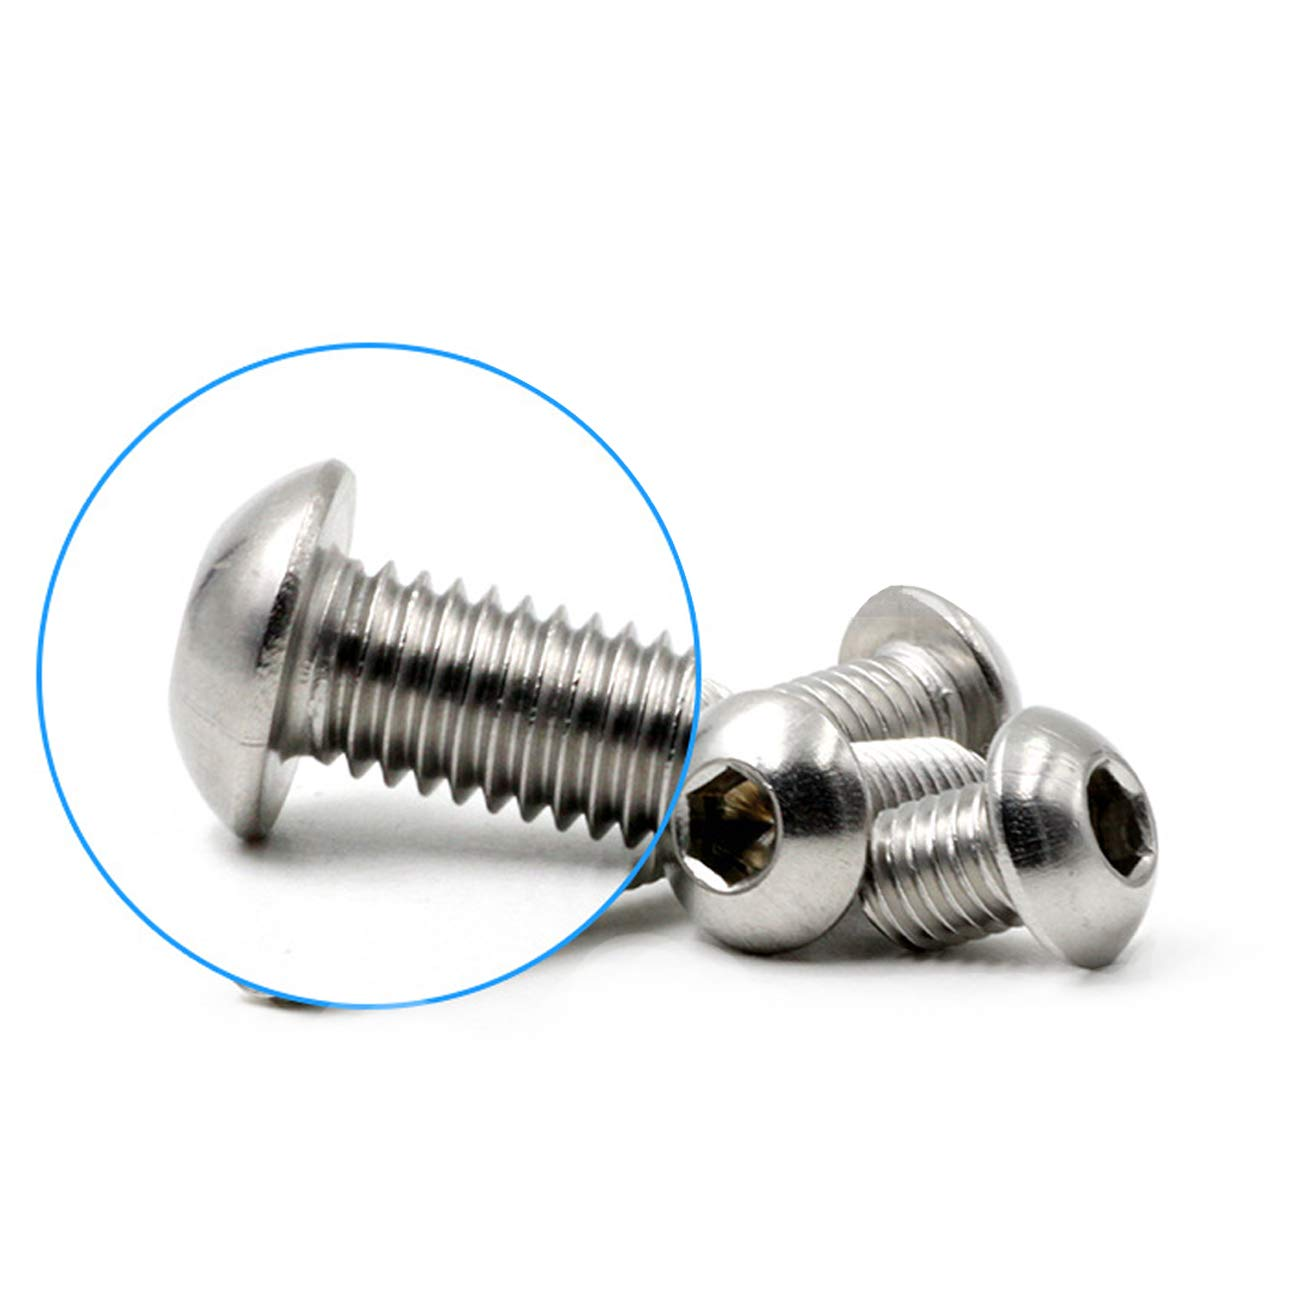 LICTOP Button Head Socket Cap Screws 1//4-20 3//4 Allen Hex 18-8 Stainless Steel Bolts 50 Pack